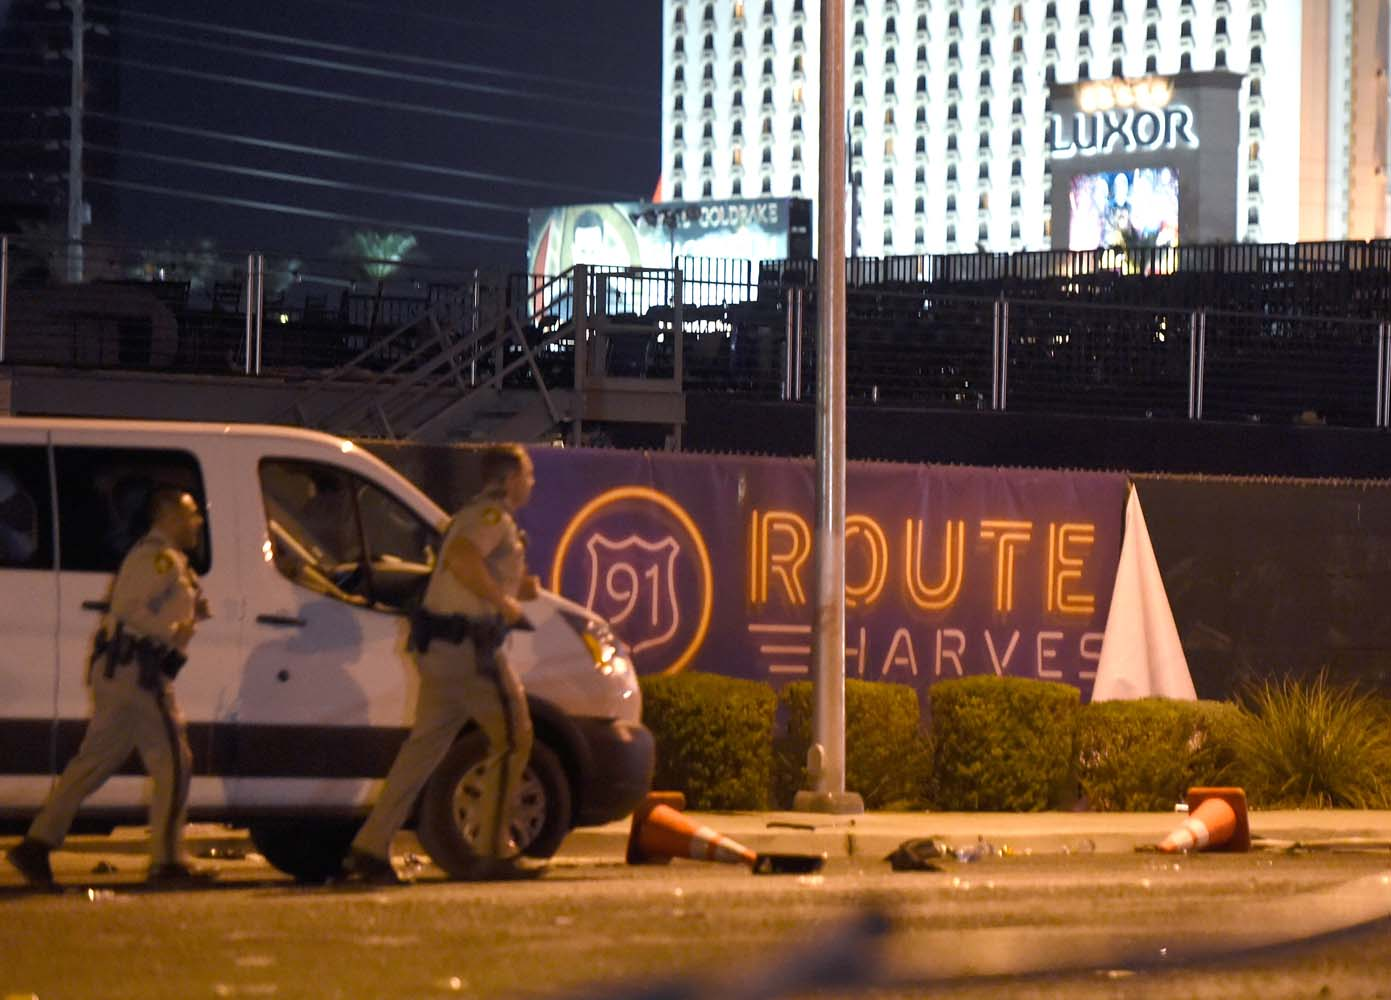 LAS VEGAS, NV - OCTOBER 02: Las Vegas police run by a banner on the fence at the Route 91 Harvest country music festival grounds after a active shooter was reported on October 2, 2017 in Las Vegas, Nevada. A gunman has opened fire on a music festival in Las Vegas, leaving at least 20 people dead and more than 100 injured. Police have confirmed that one suspect has been shot. The investigation is ongoing. David Becker/Getty Images/AFP